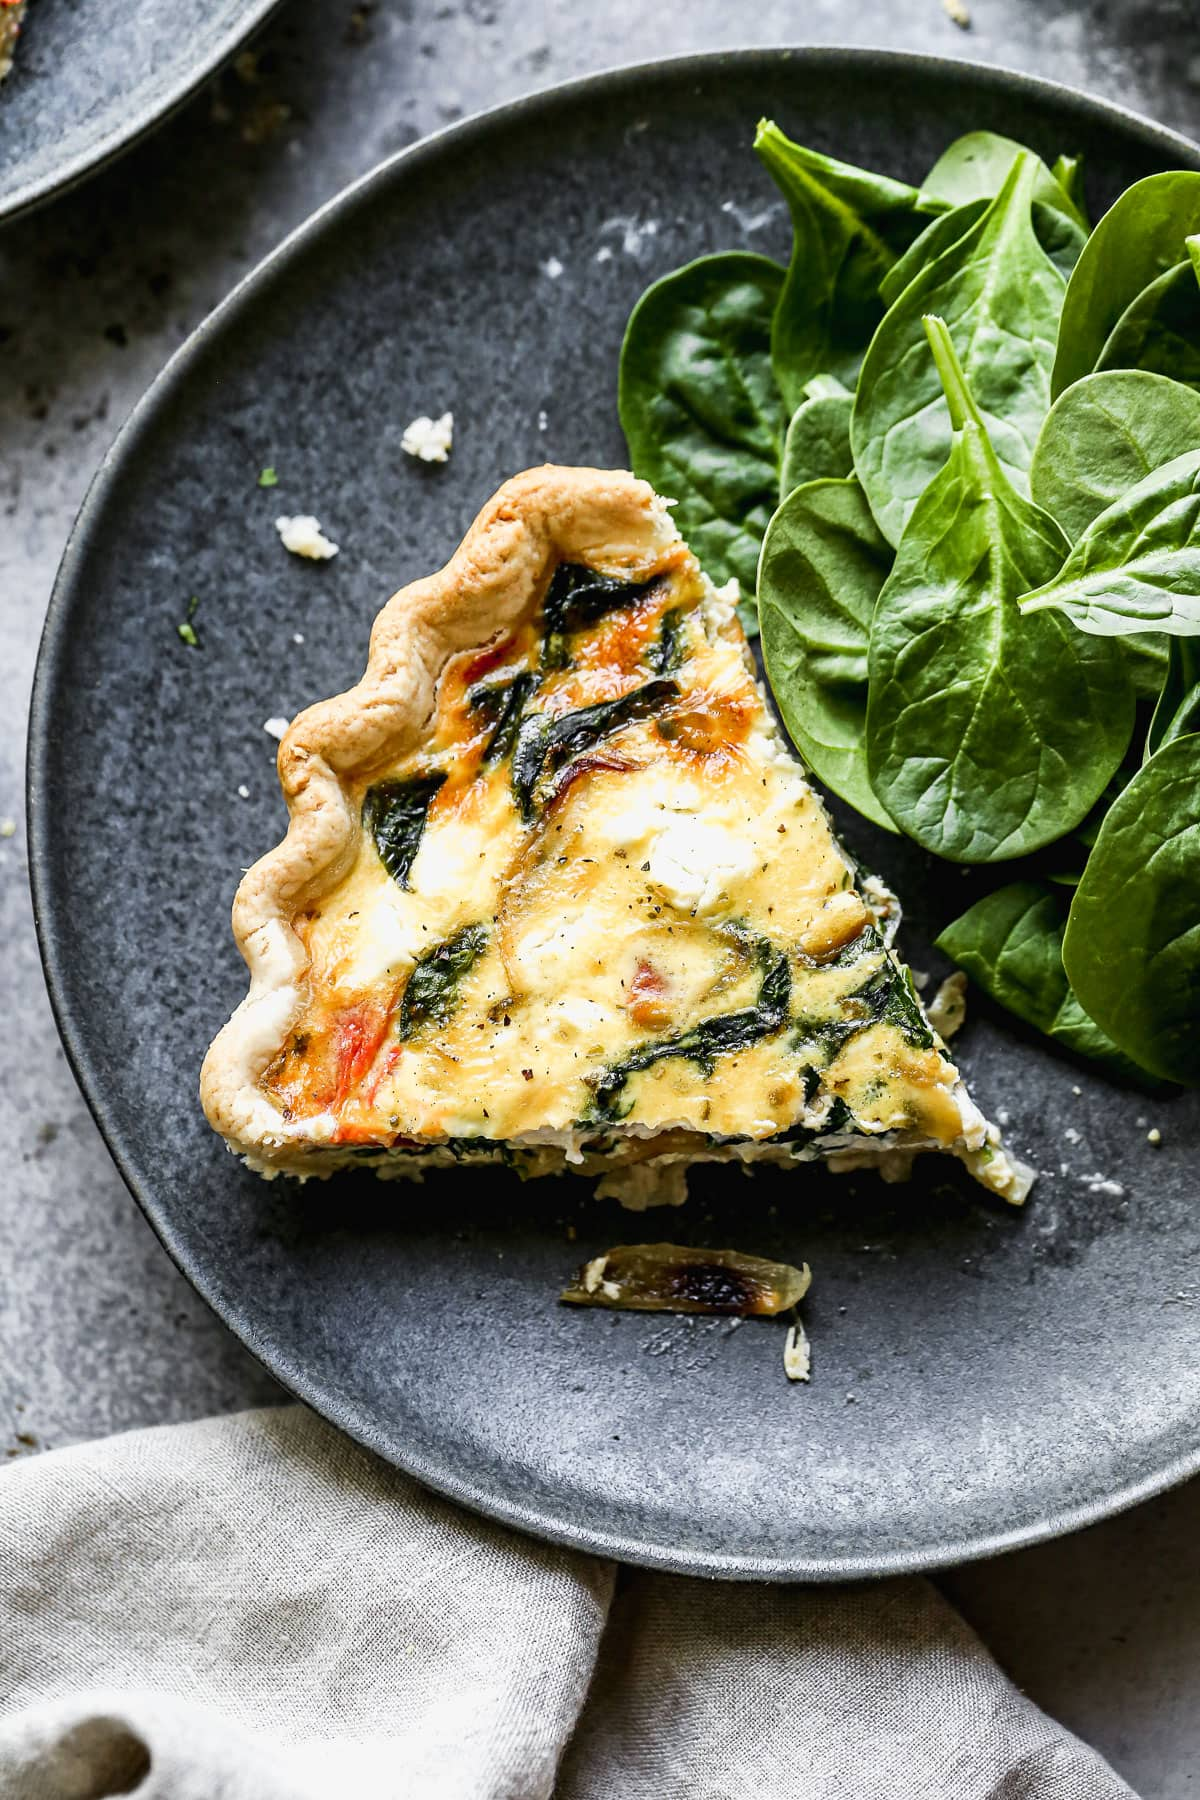 Easy goat cheese quiche on a plate